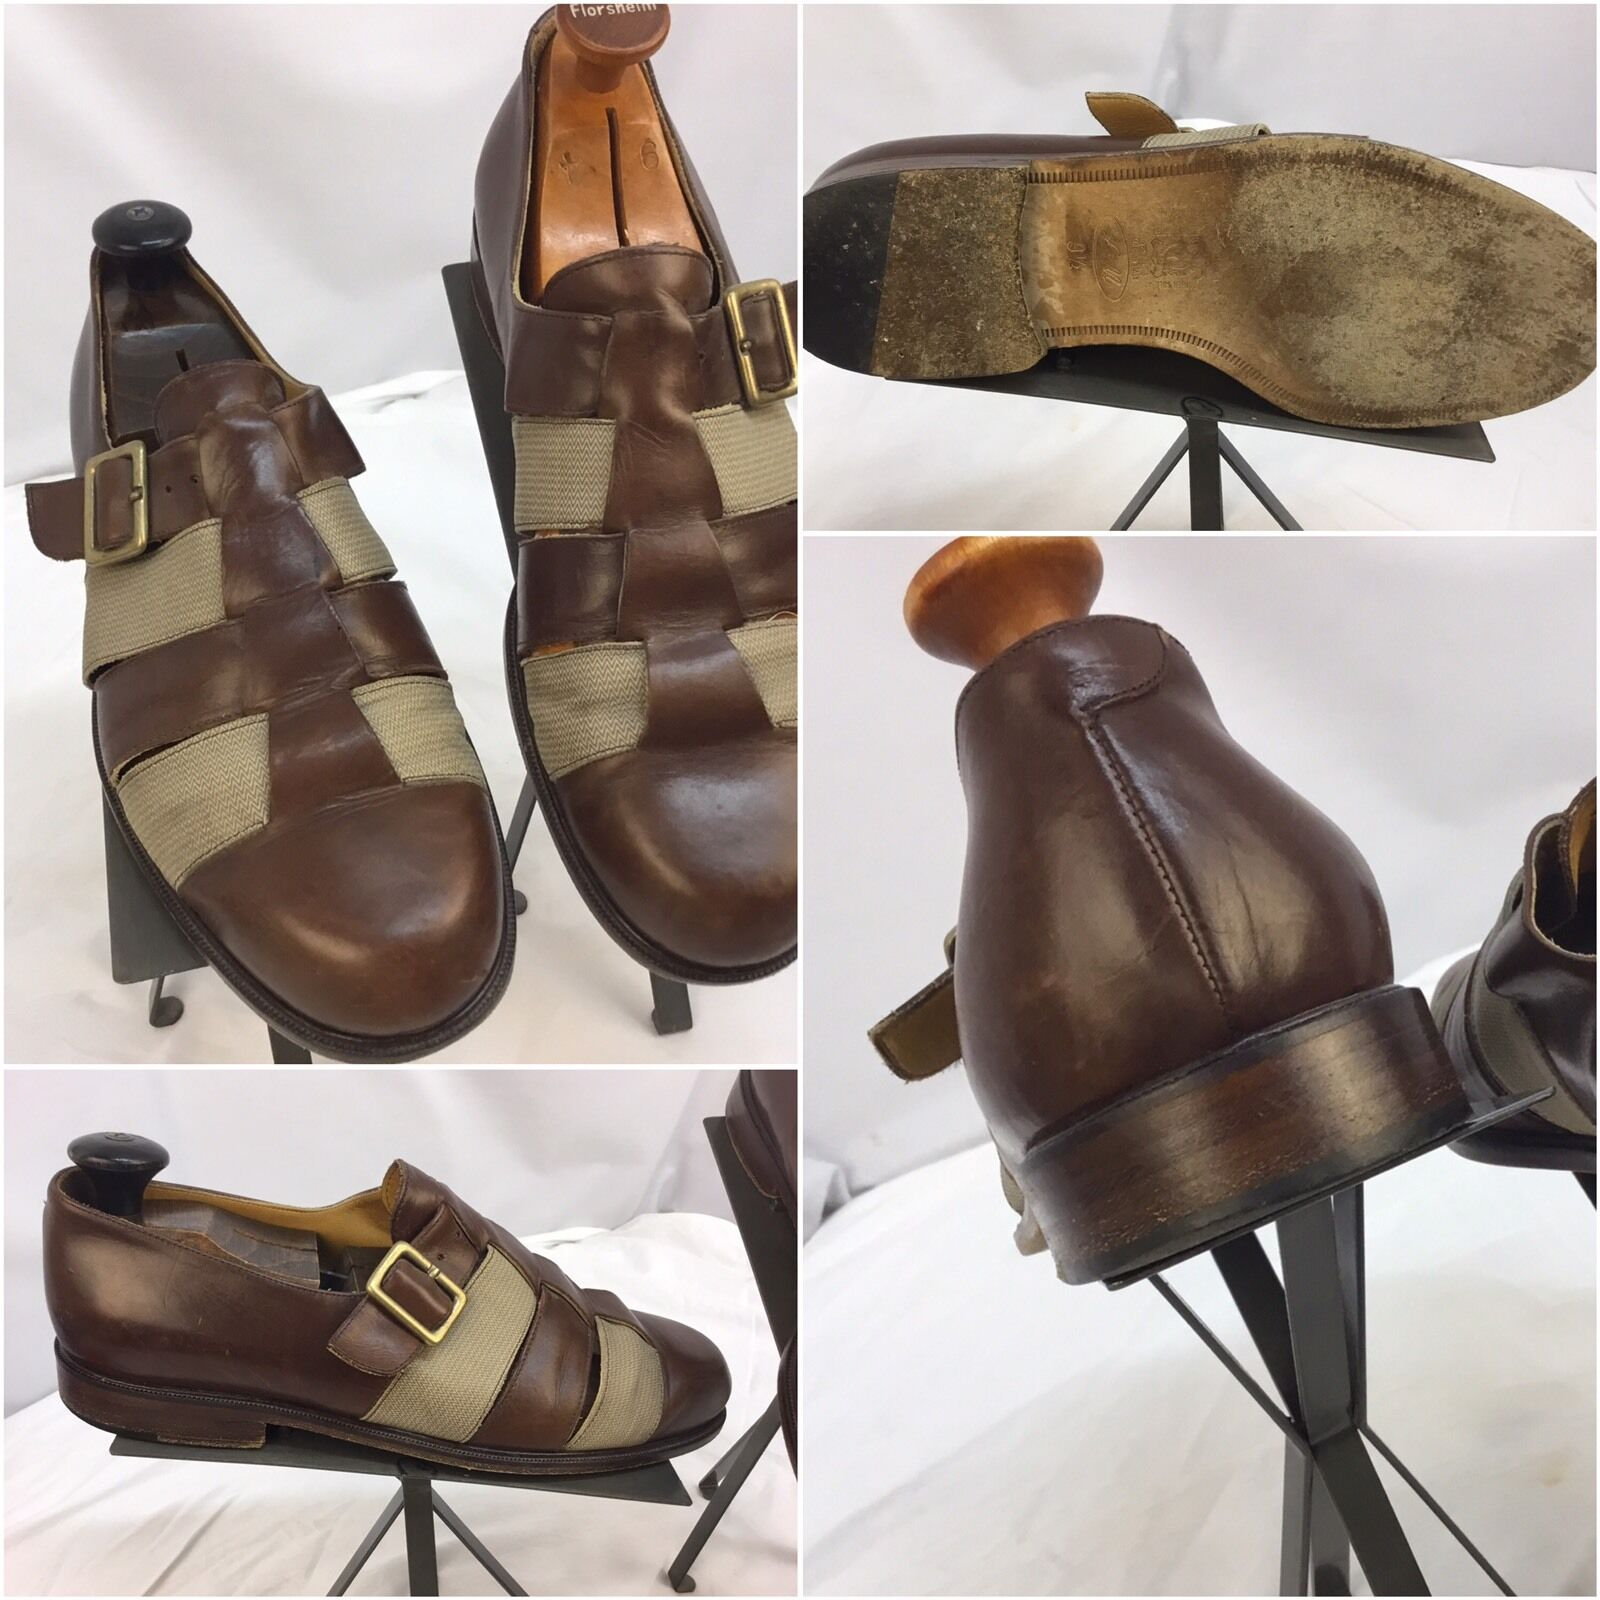 LM Brown Luciano Michielon Sandals Shoes 9.5 Brown LM Braided Worn 3x Made Italy YGI D7-2 87b299